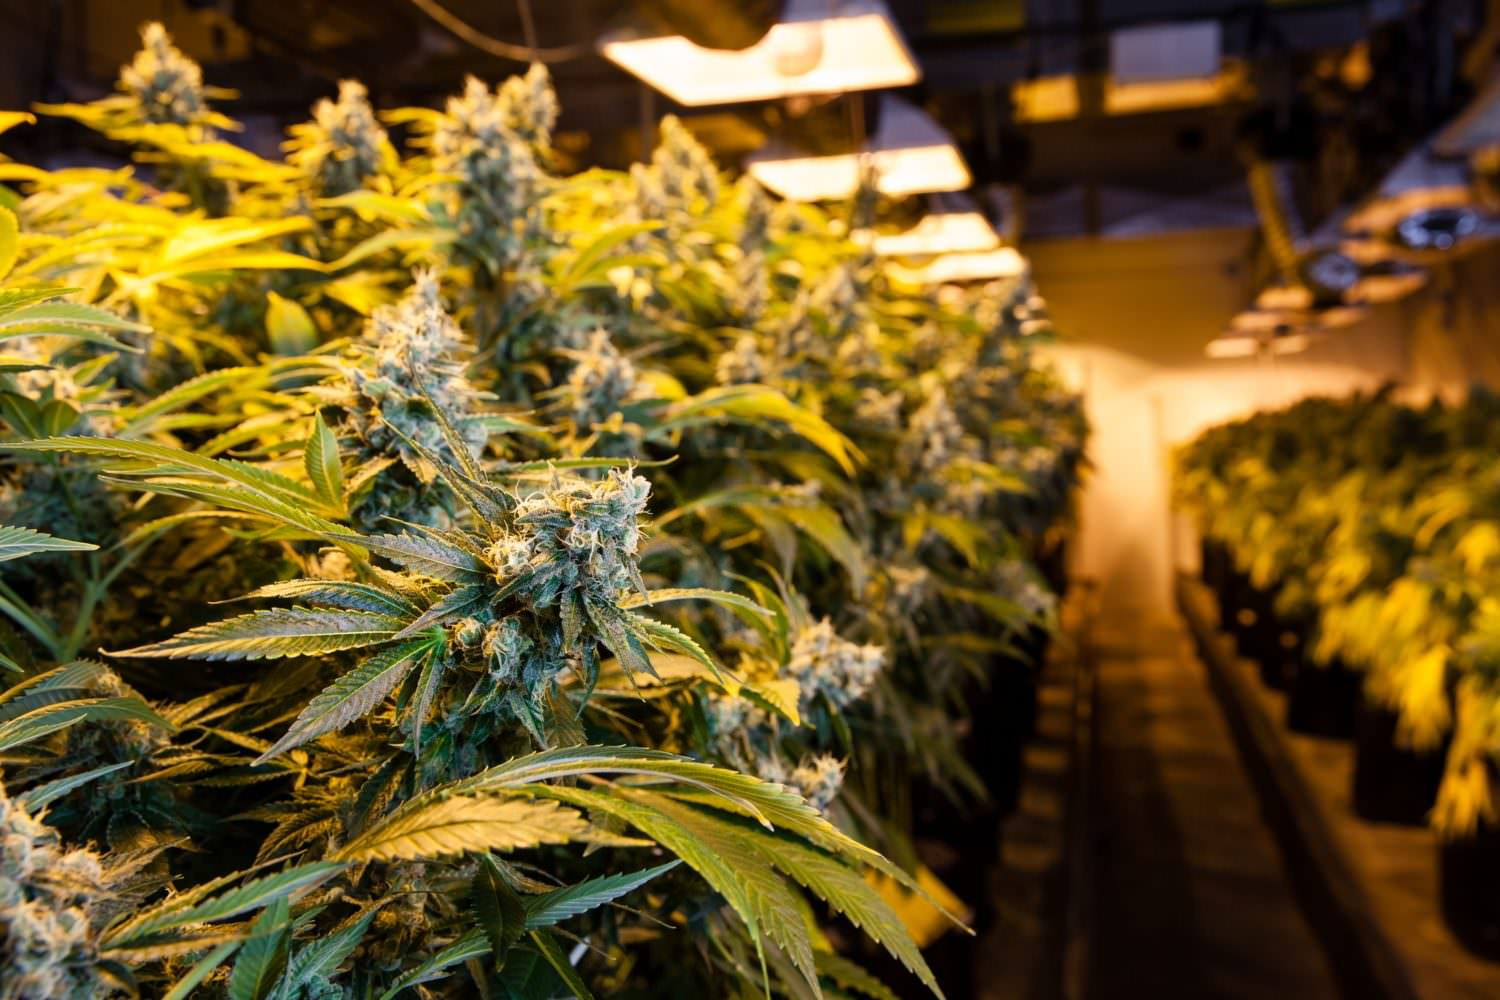 Canada cannabis cultivation, Licensed marijuana cultivation in Canada exceeds 10 million square feet